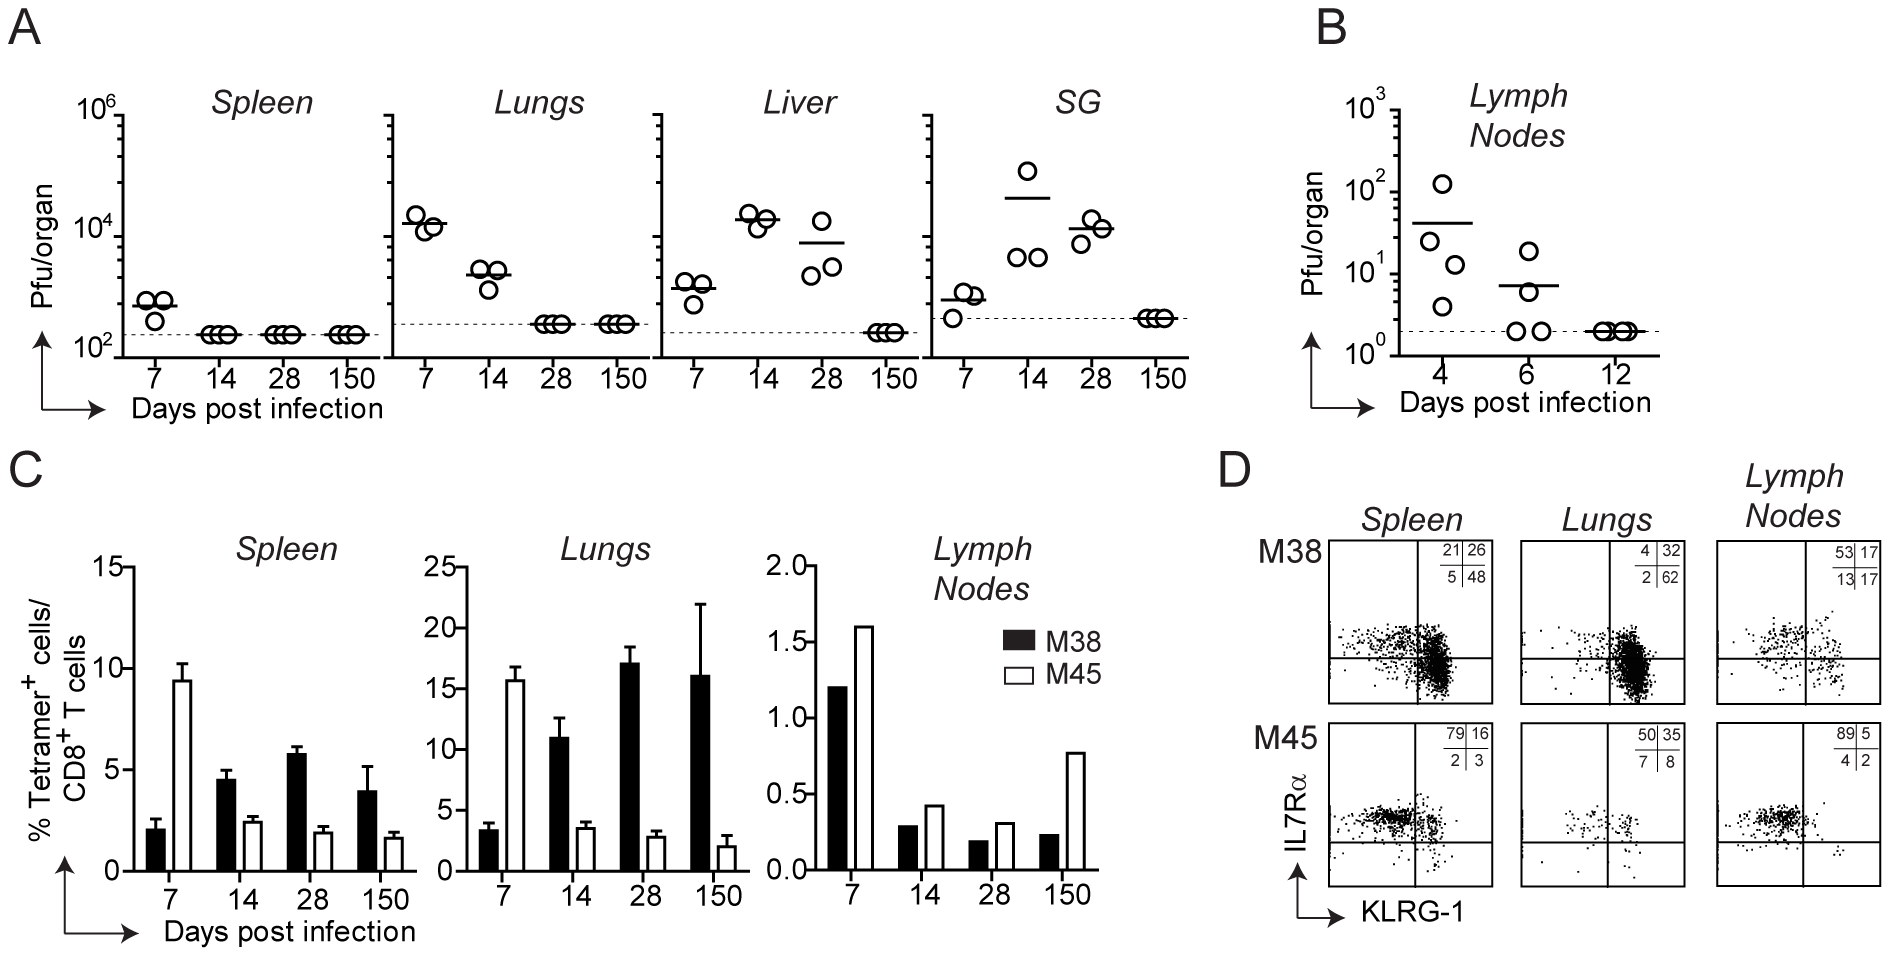 Tissue-specific pattern of MCMV-specific CD8 T cell responses.